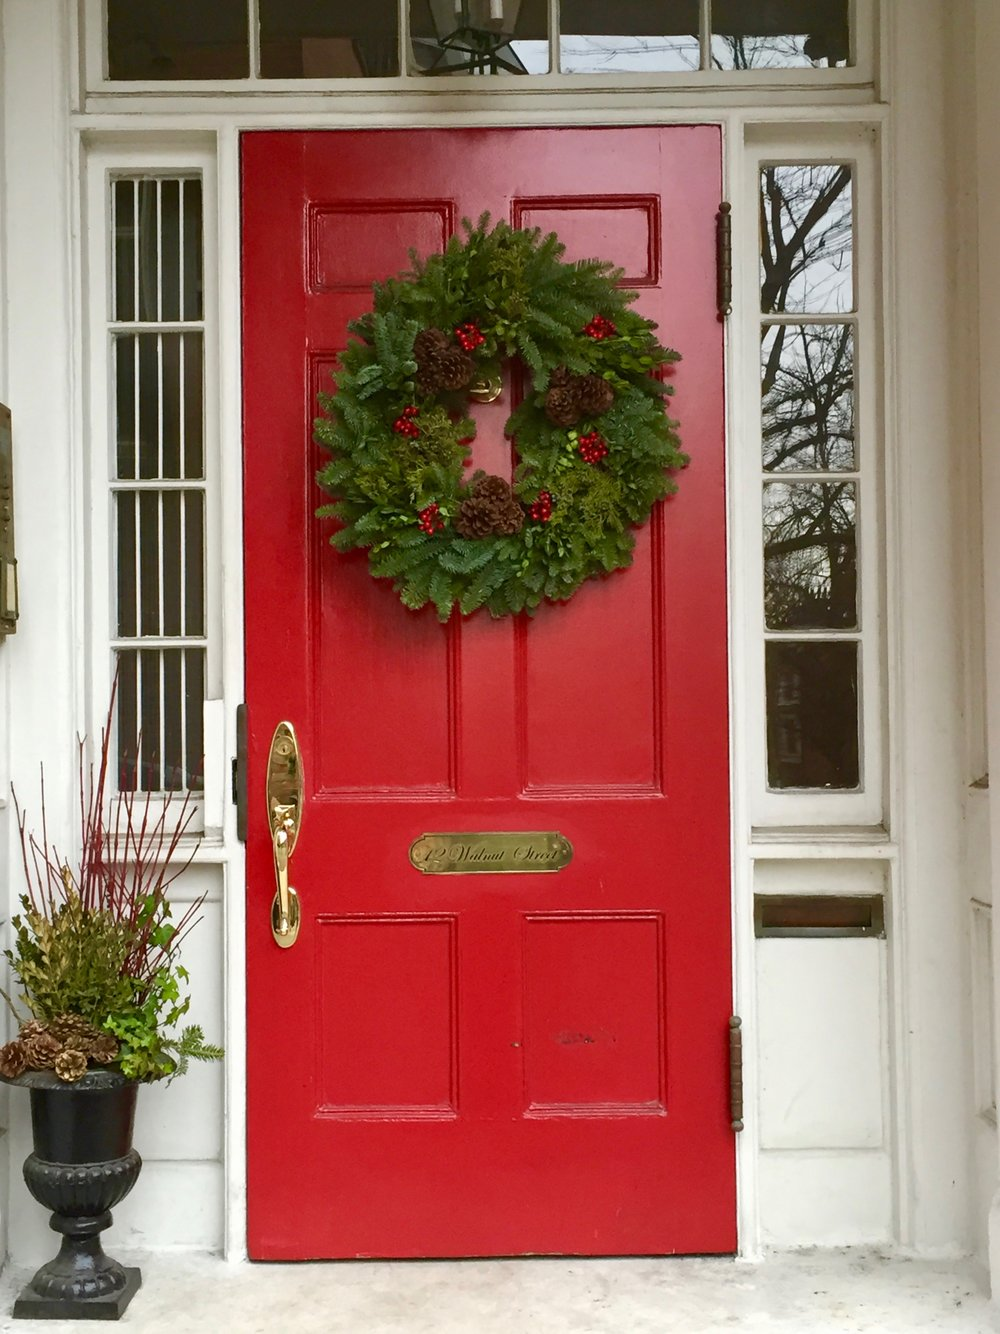 Christmas Wreath Front Door Beacon Hill New England.jpg